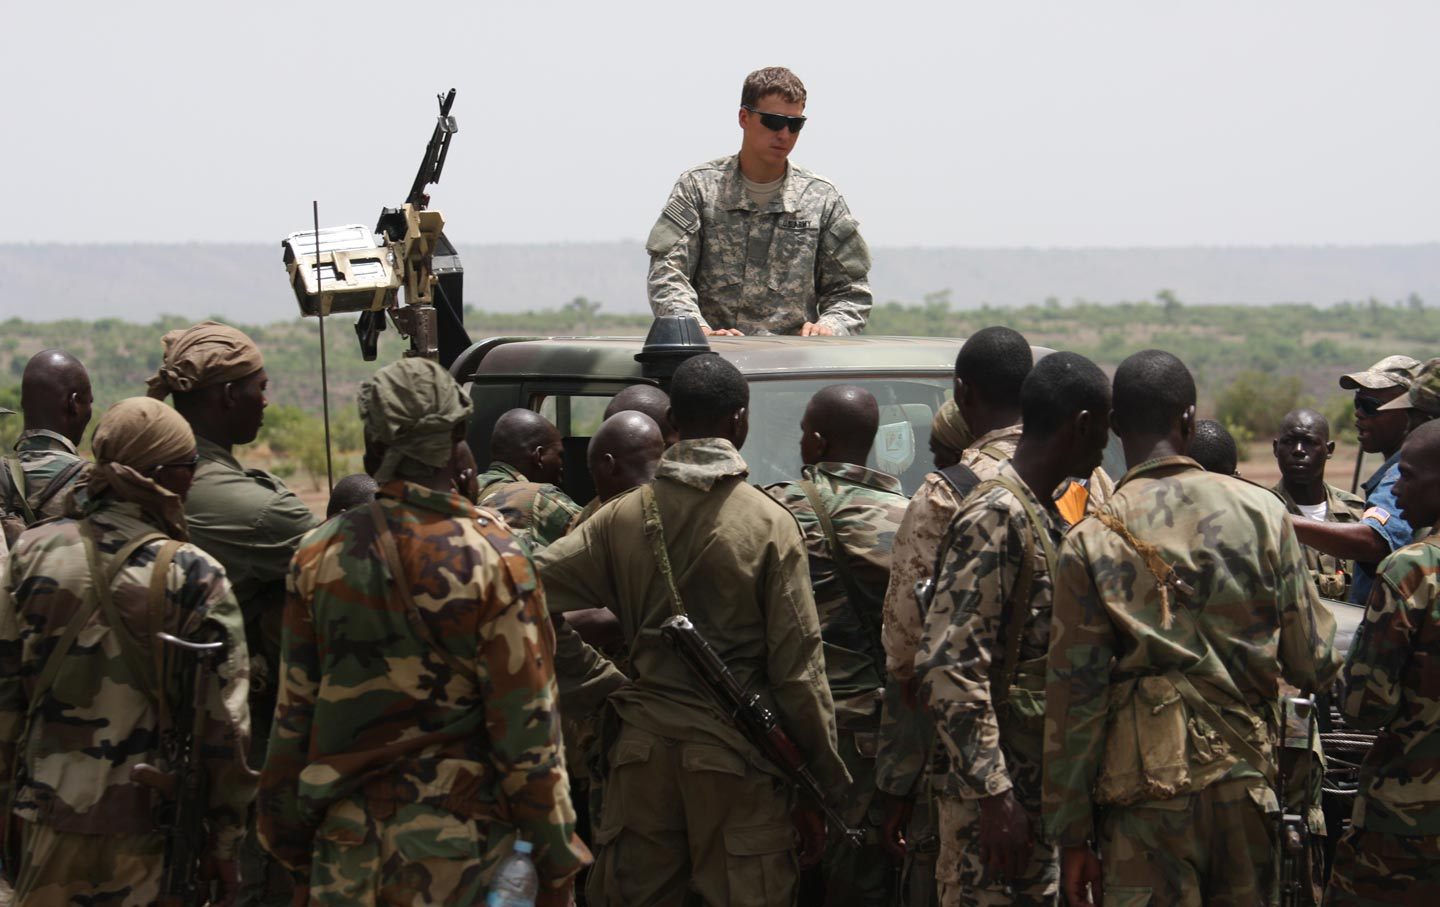 US Africa Command (Africom) Carried Out the Largest Military Exercise of the African Continent